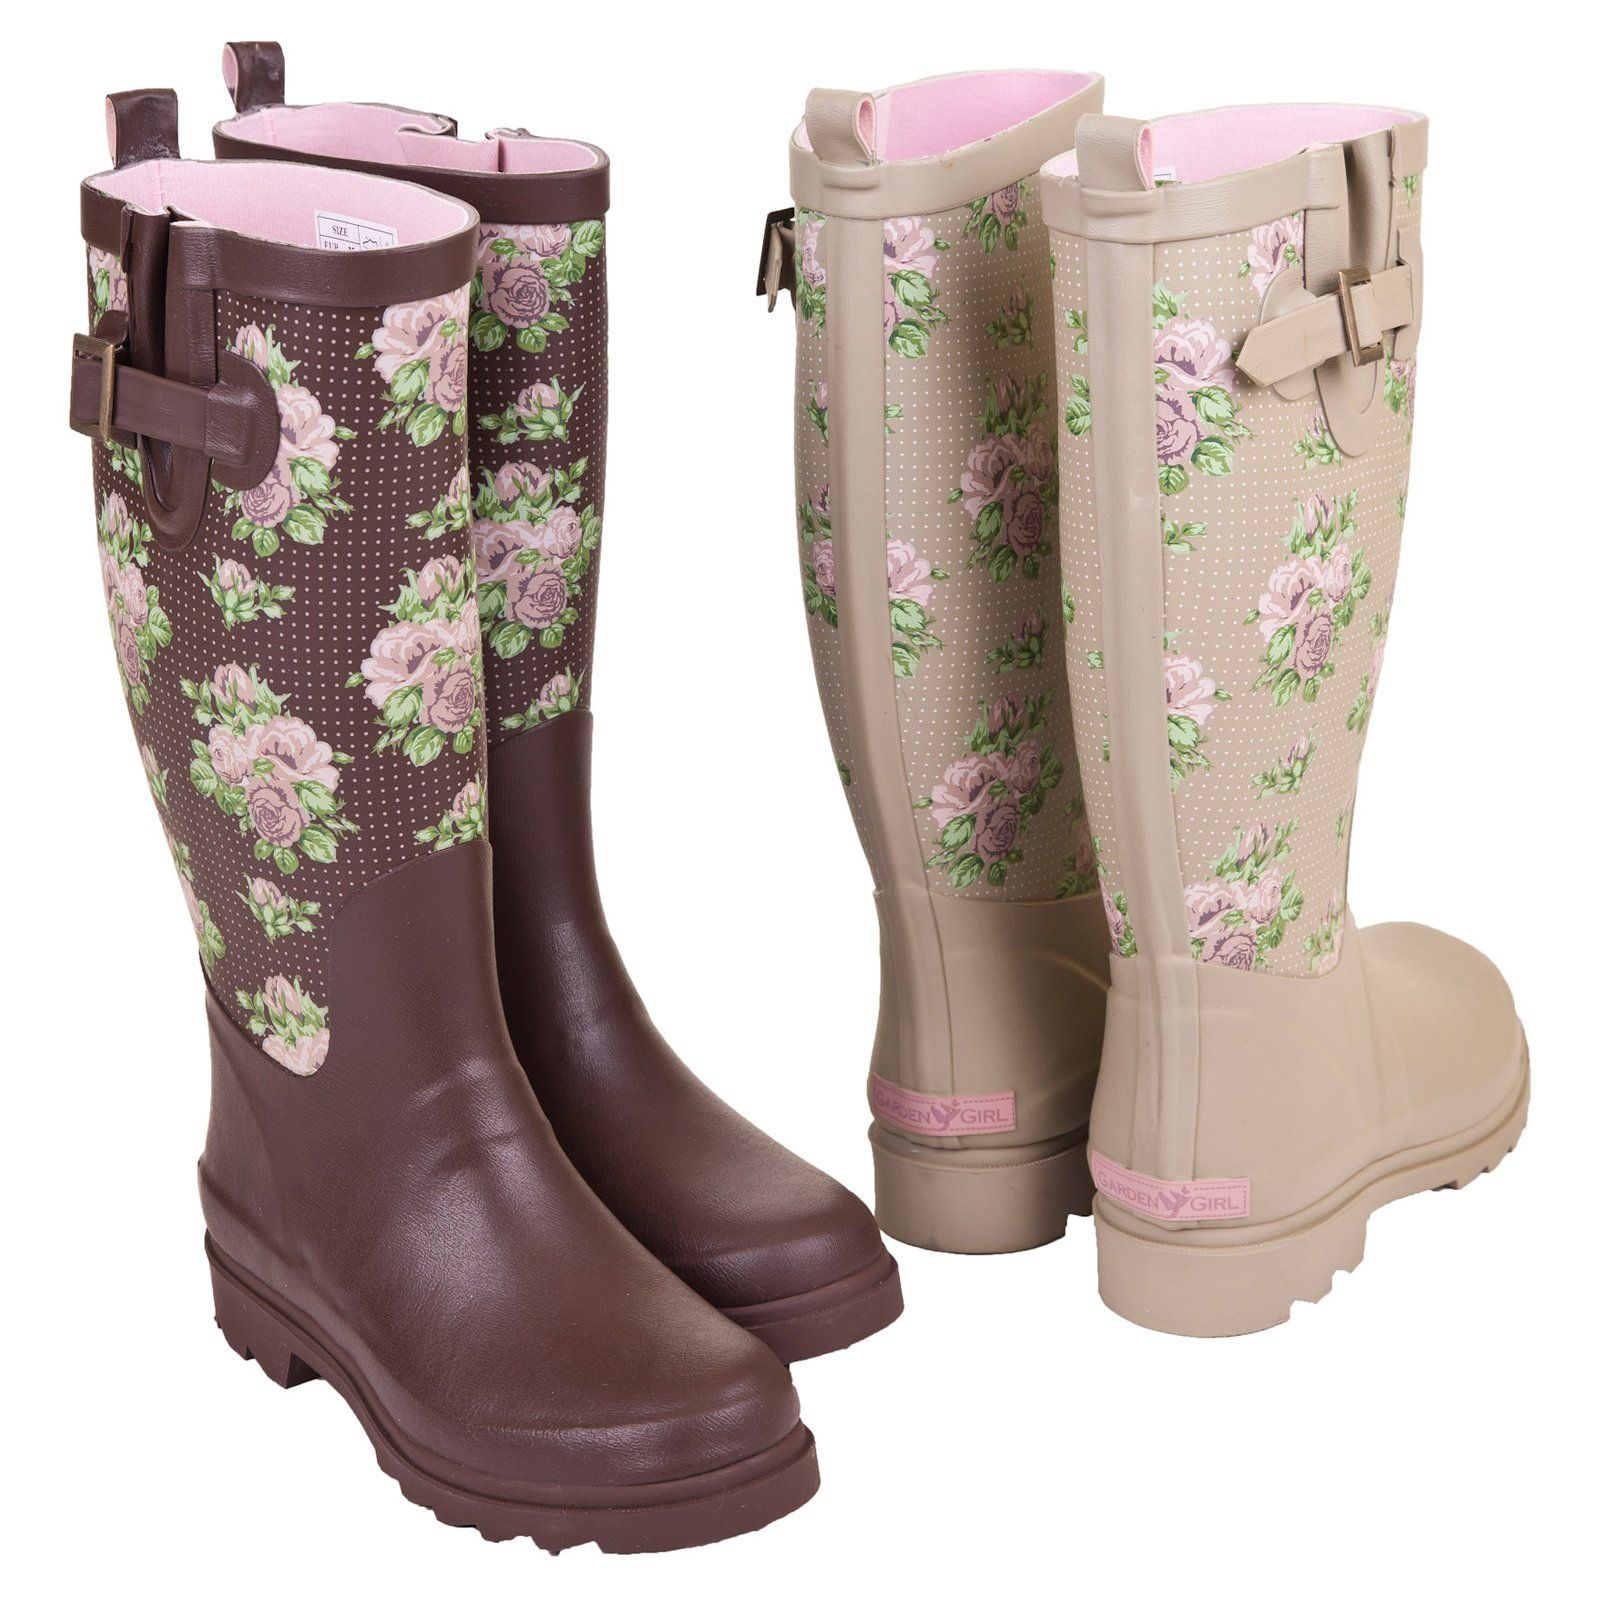 Garden Wellington Boots Gardening Arel At